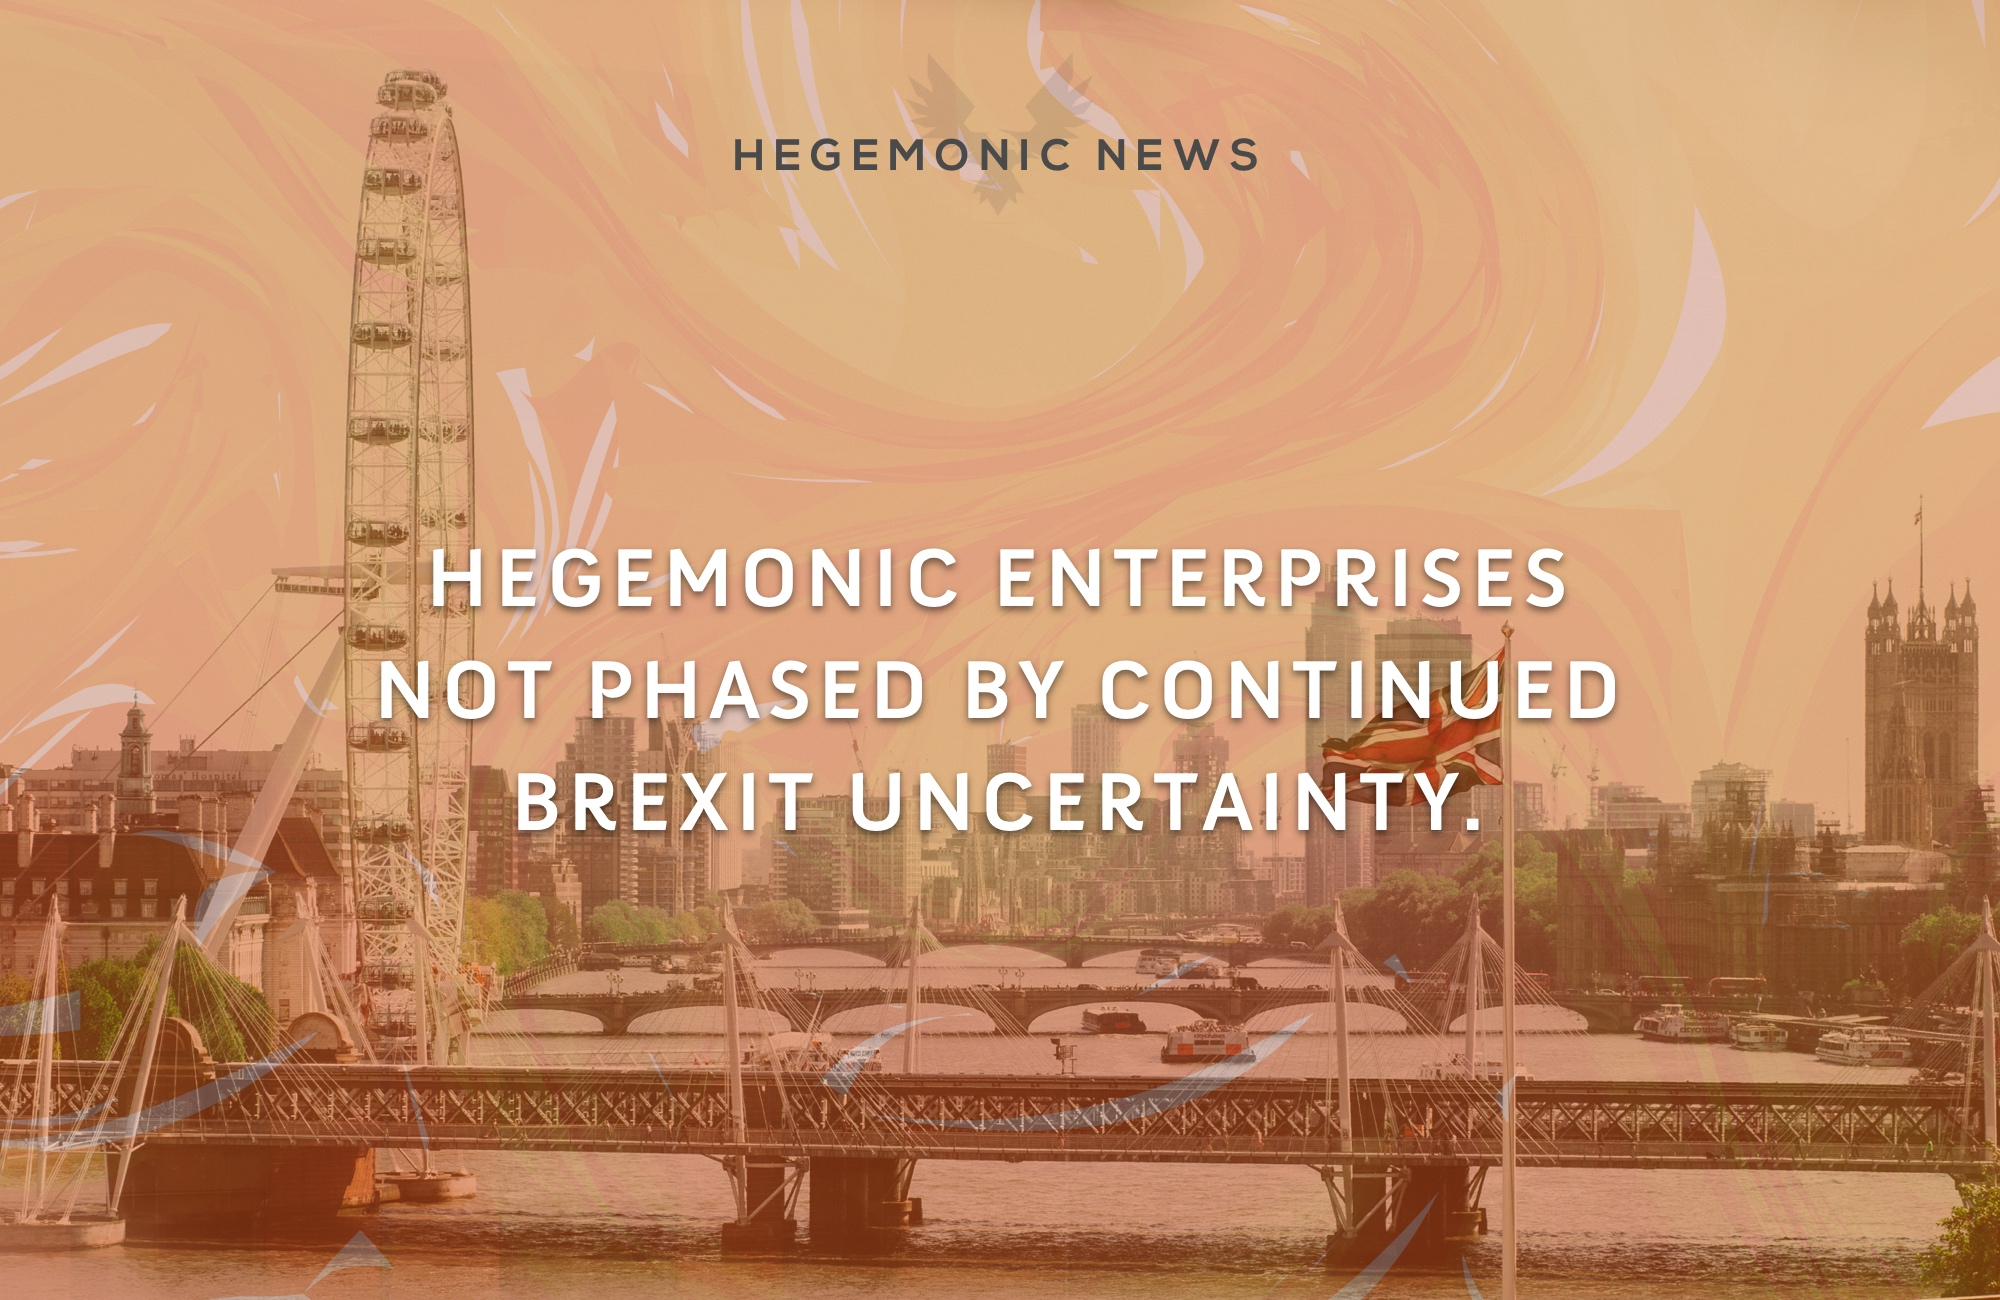 Hegemonic Enterprises not phased by continued Brexit uncertainty.